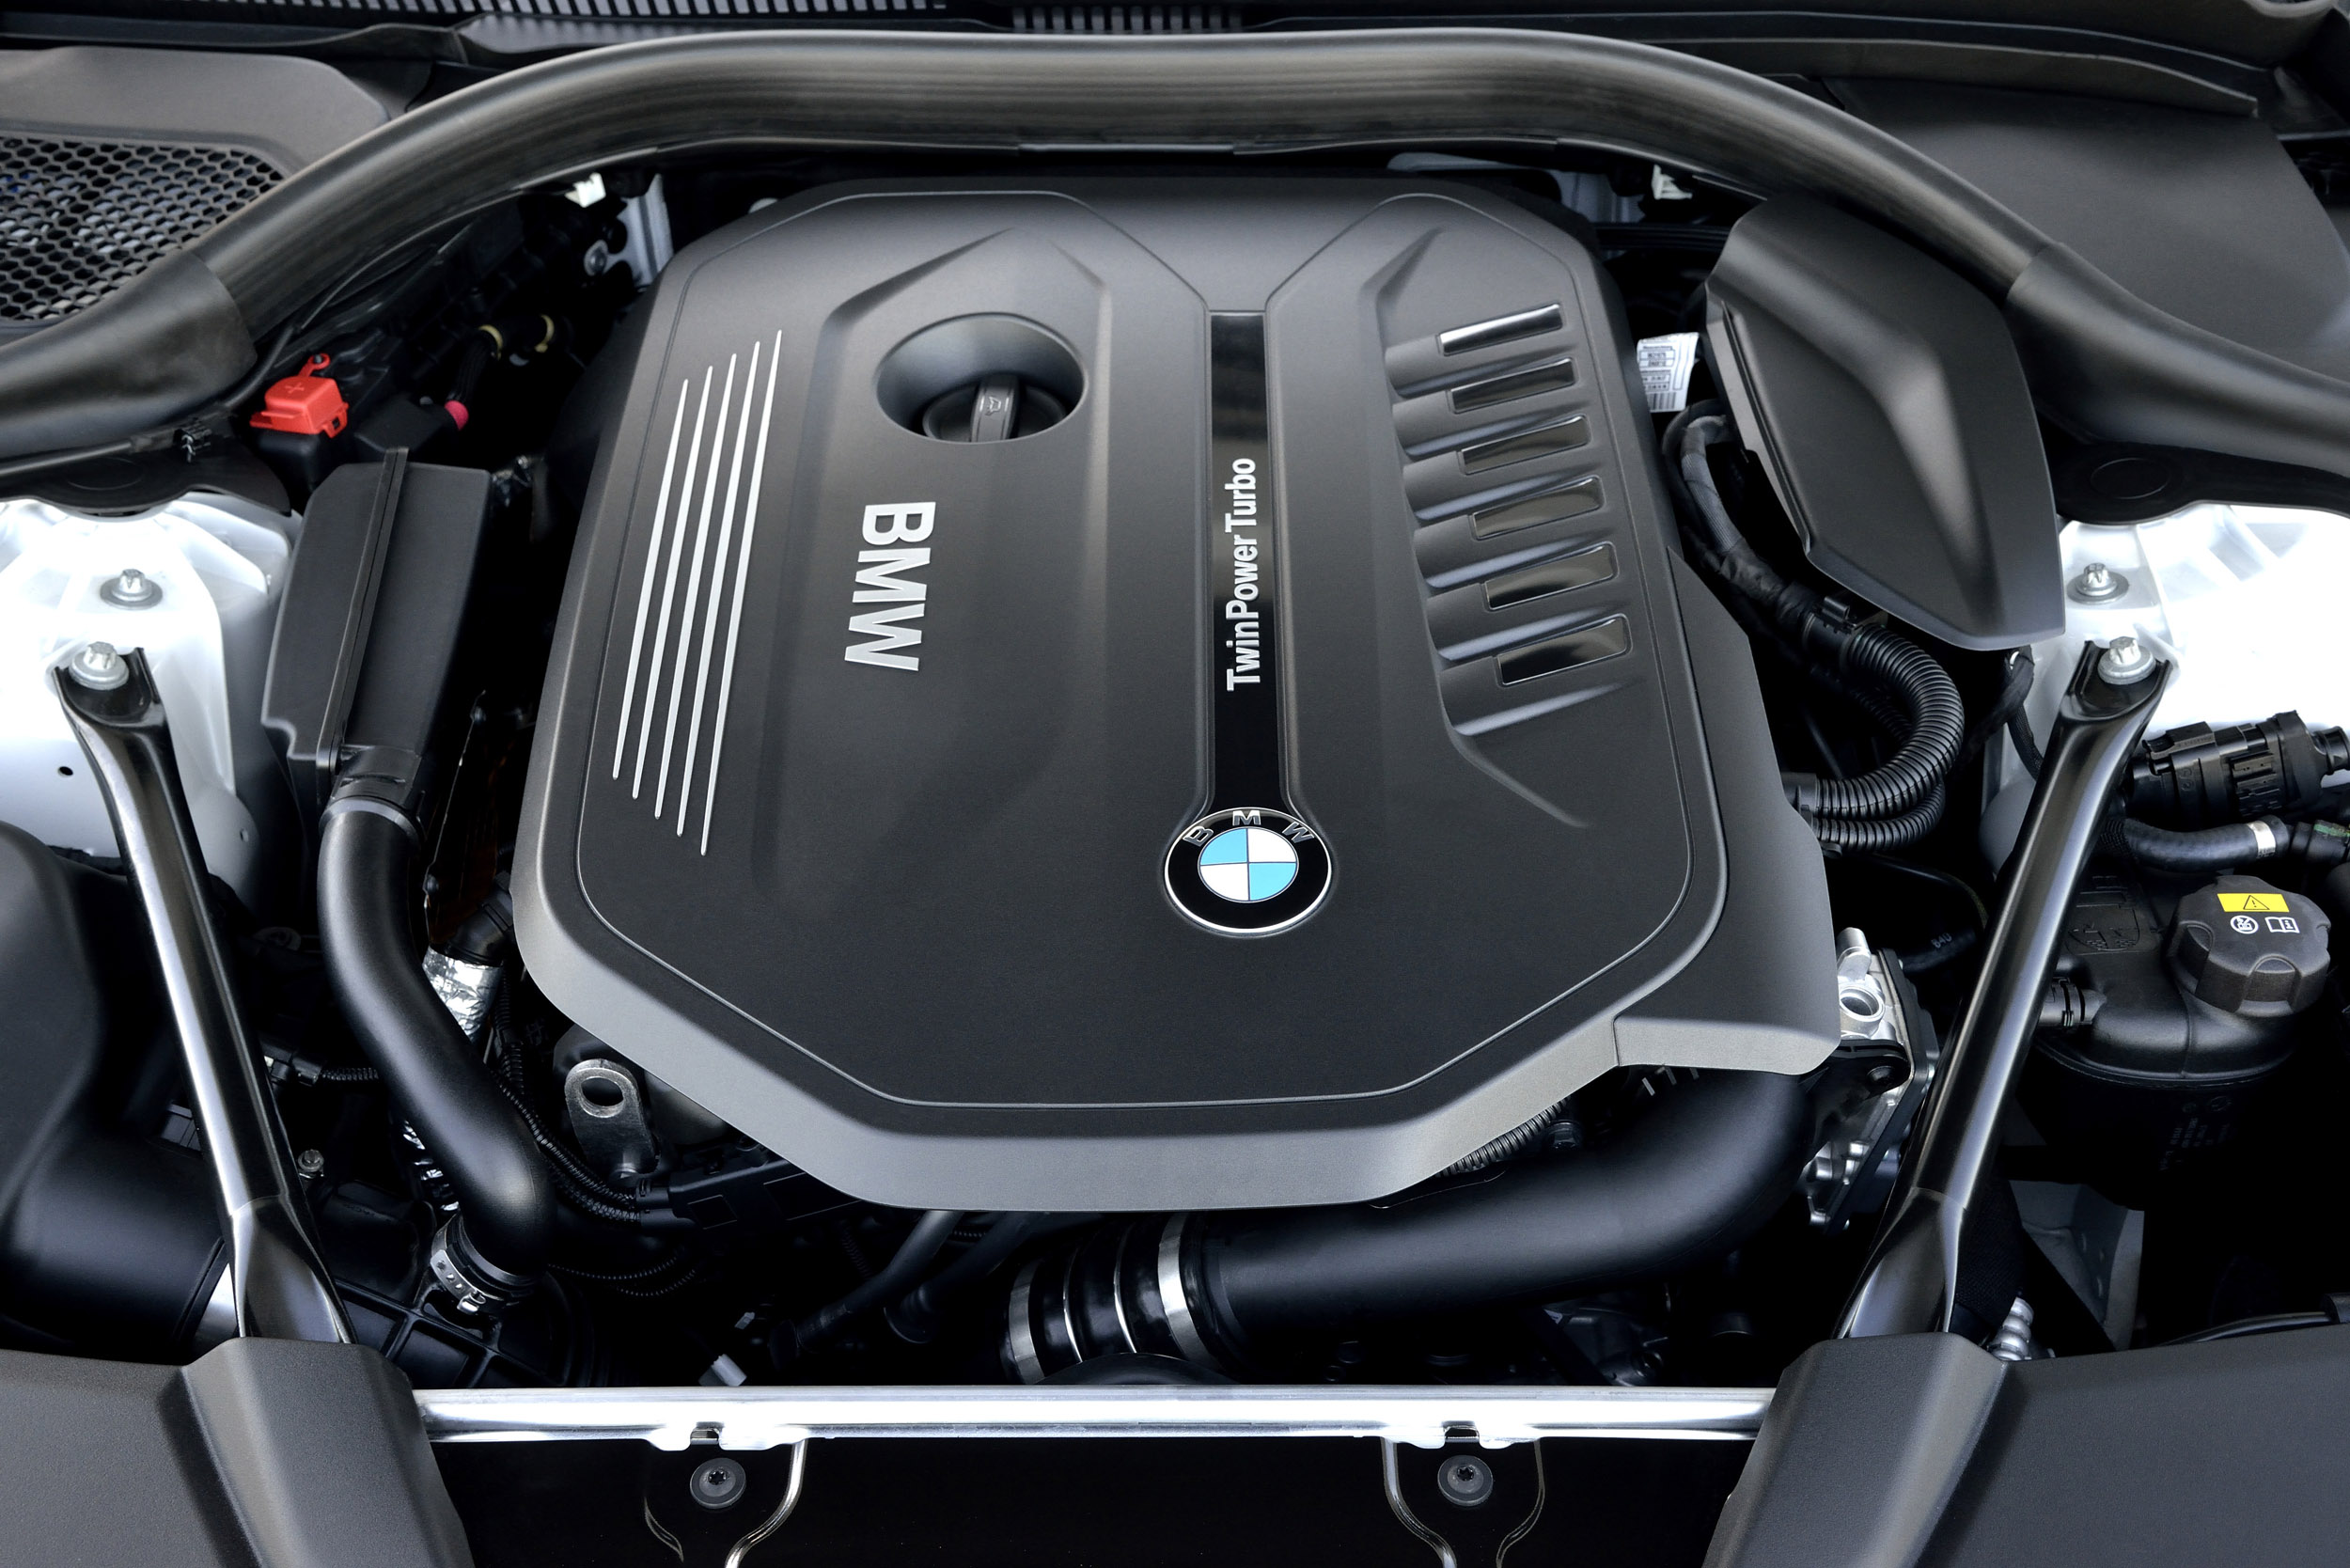 BMW 540i review - Petrol 'six plays second fiddle to the